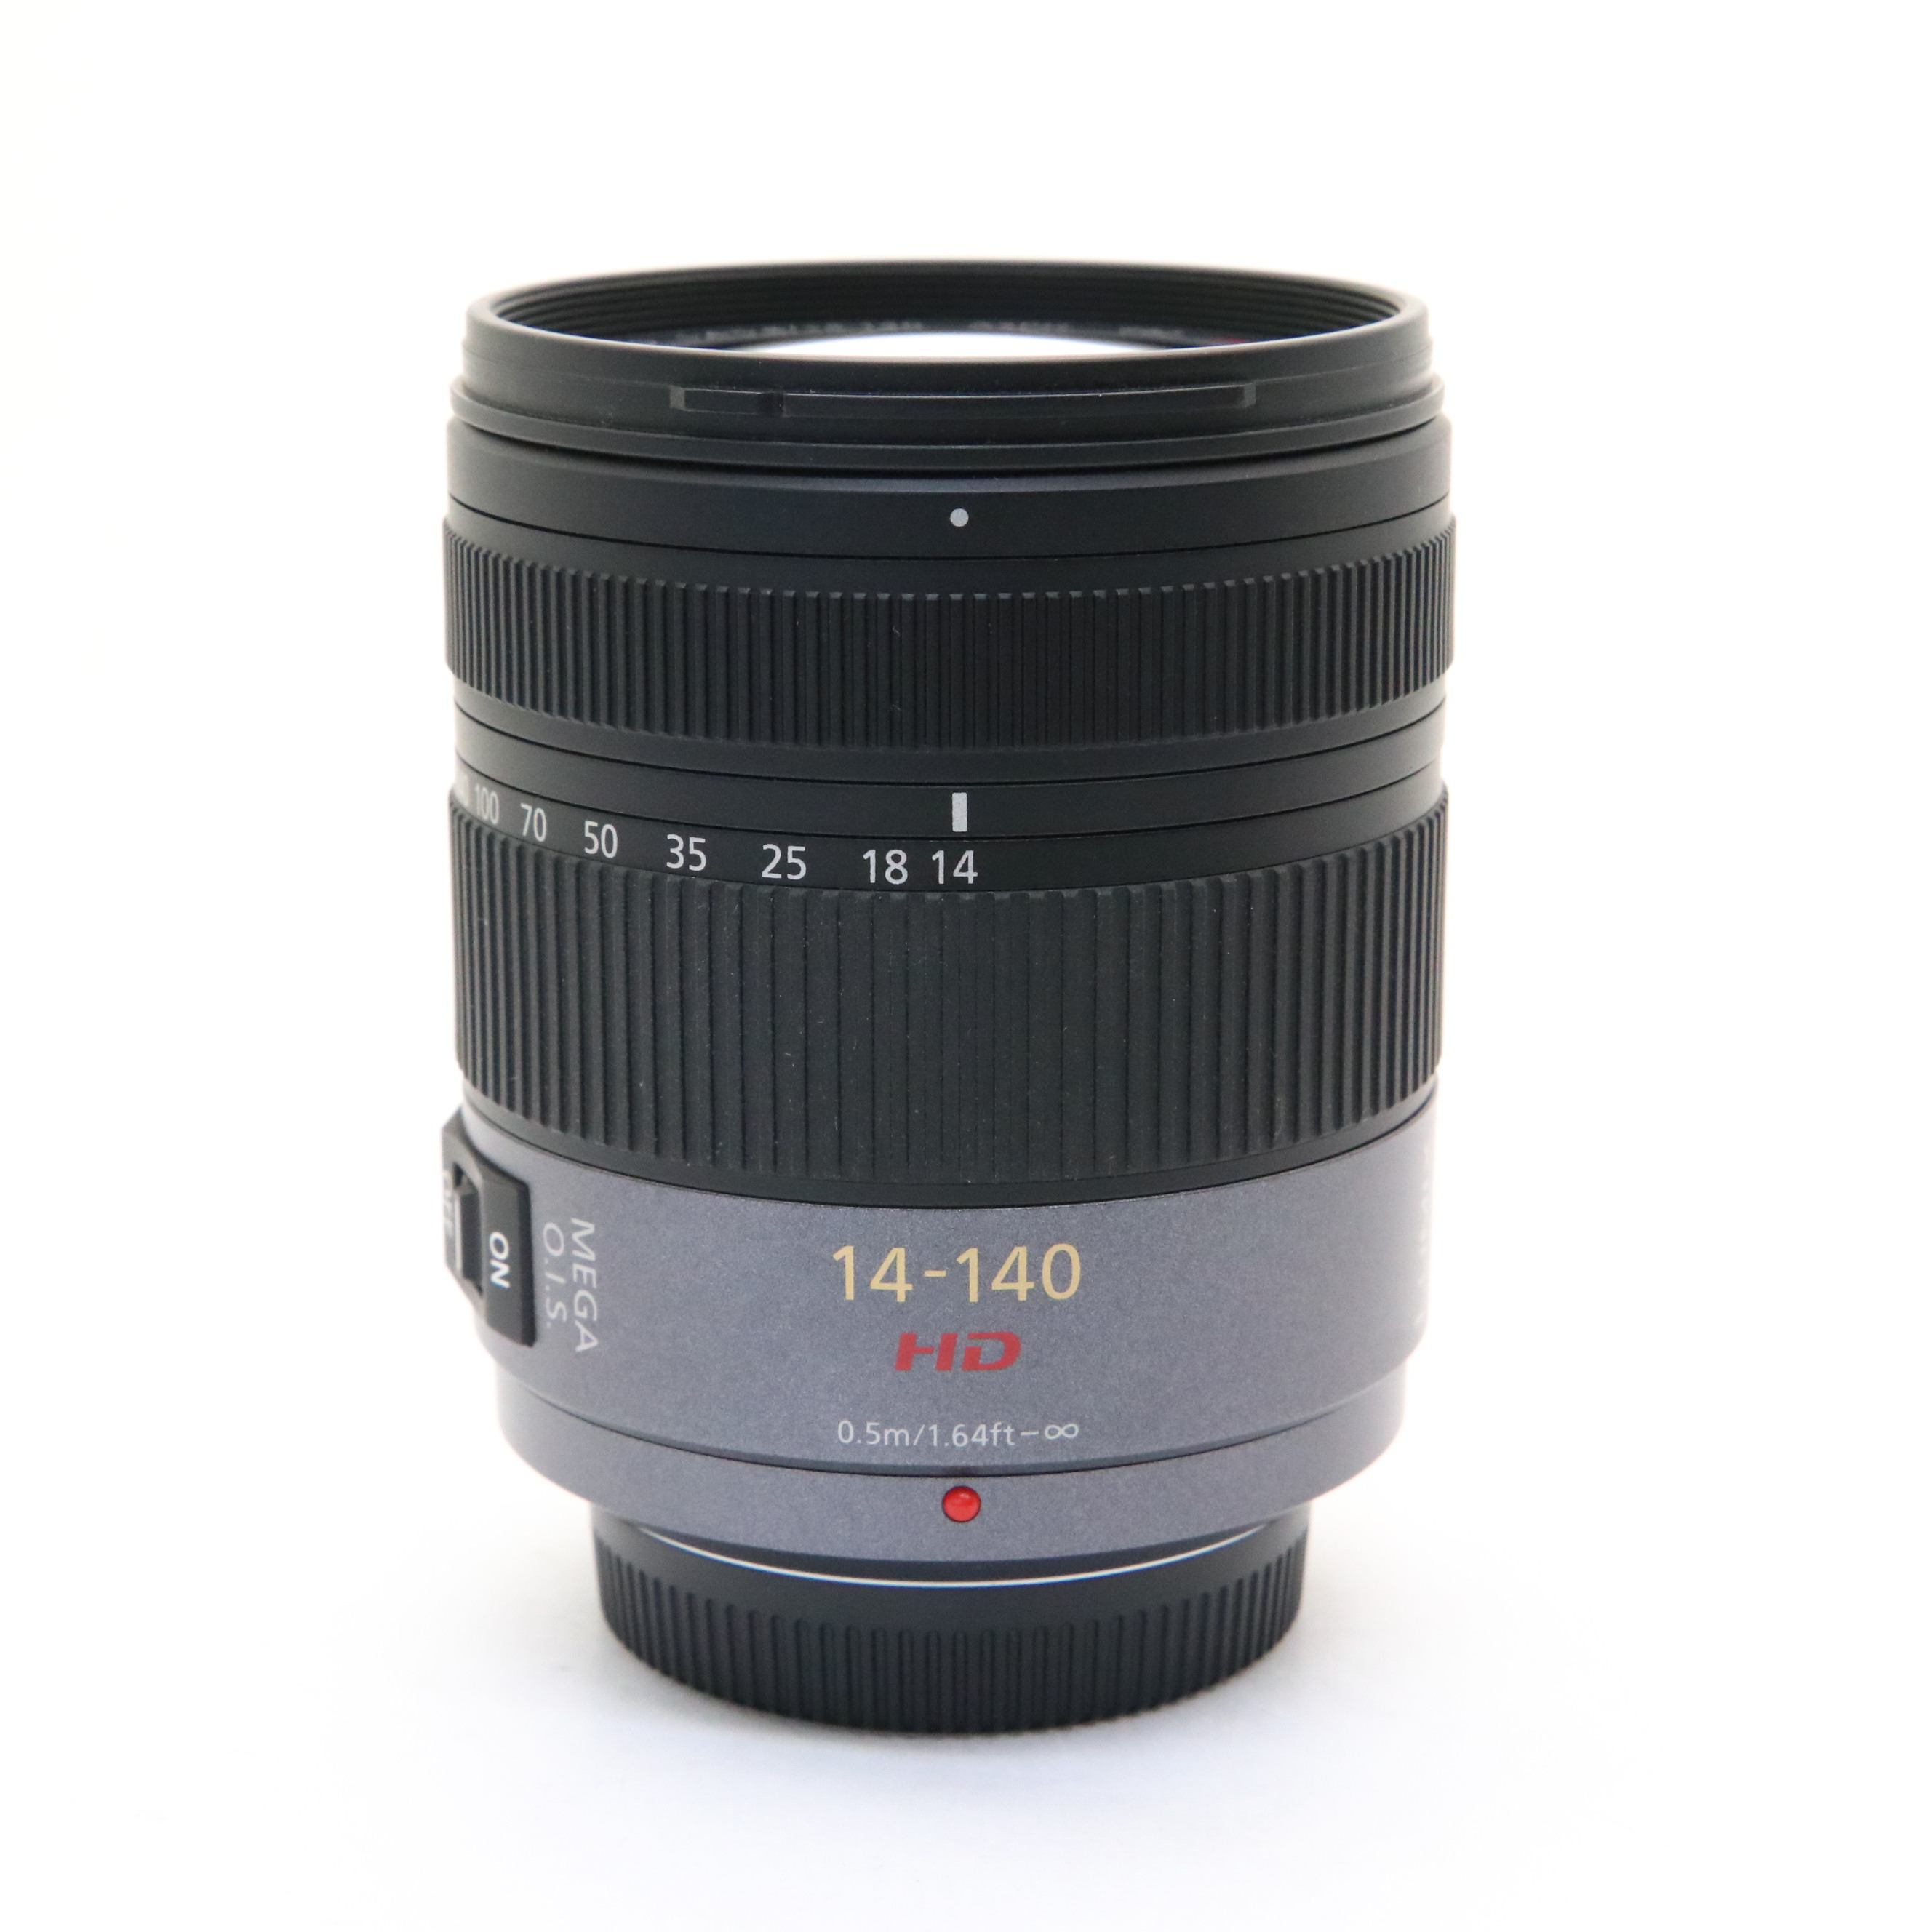 Panasonic Lumix 14-140mm f3.5-5.6